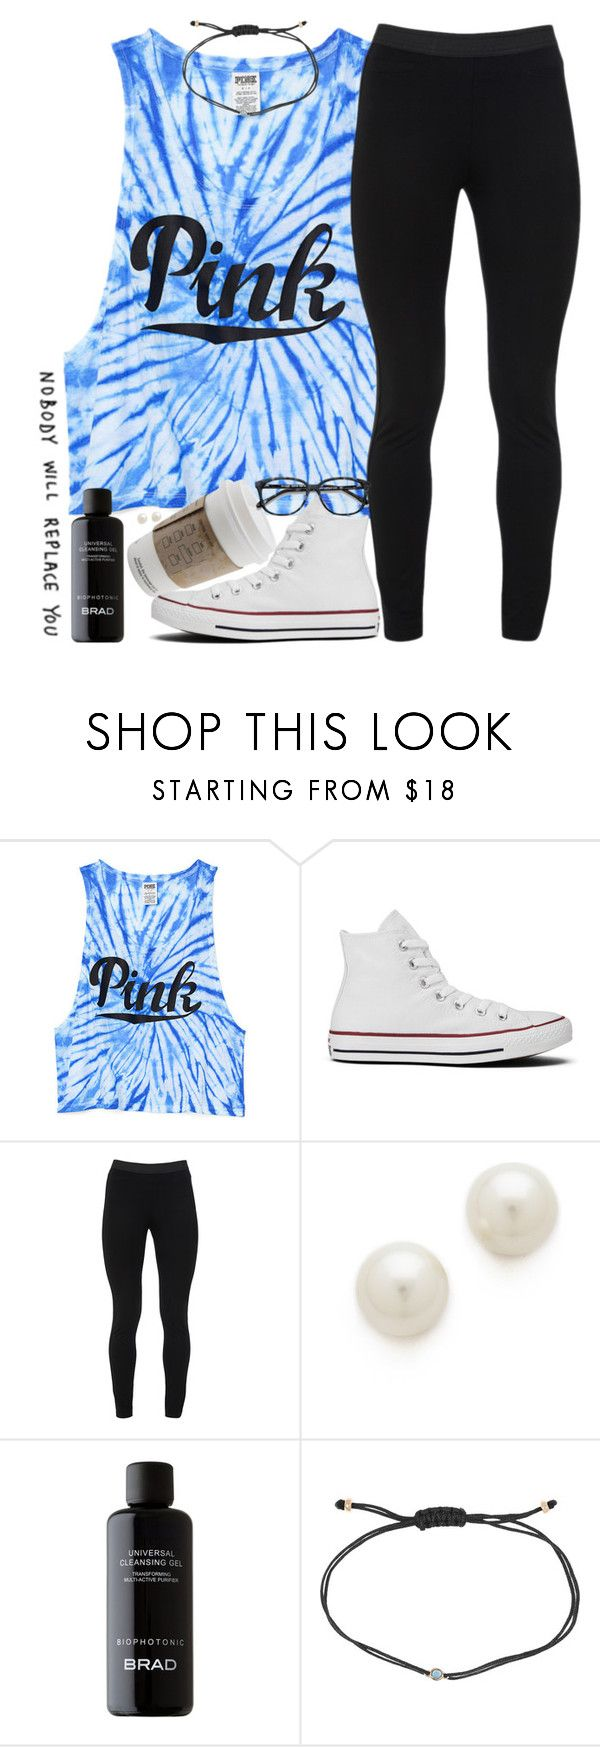 """Can't keep my earrings in because of cheer"" by southernstruttin ❤ liked on Polyvore featuring Victoria's Secret PINK, Converse, Peace of Cloth, Kenneth Jay Lane, Melissa Joy Manning and Ace"